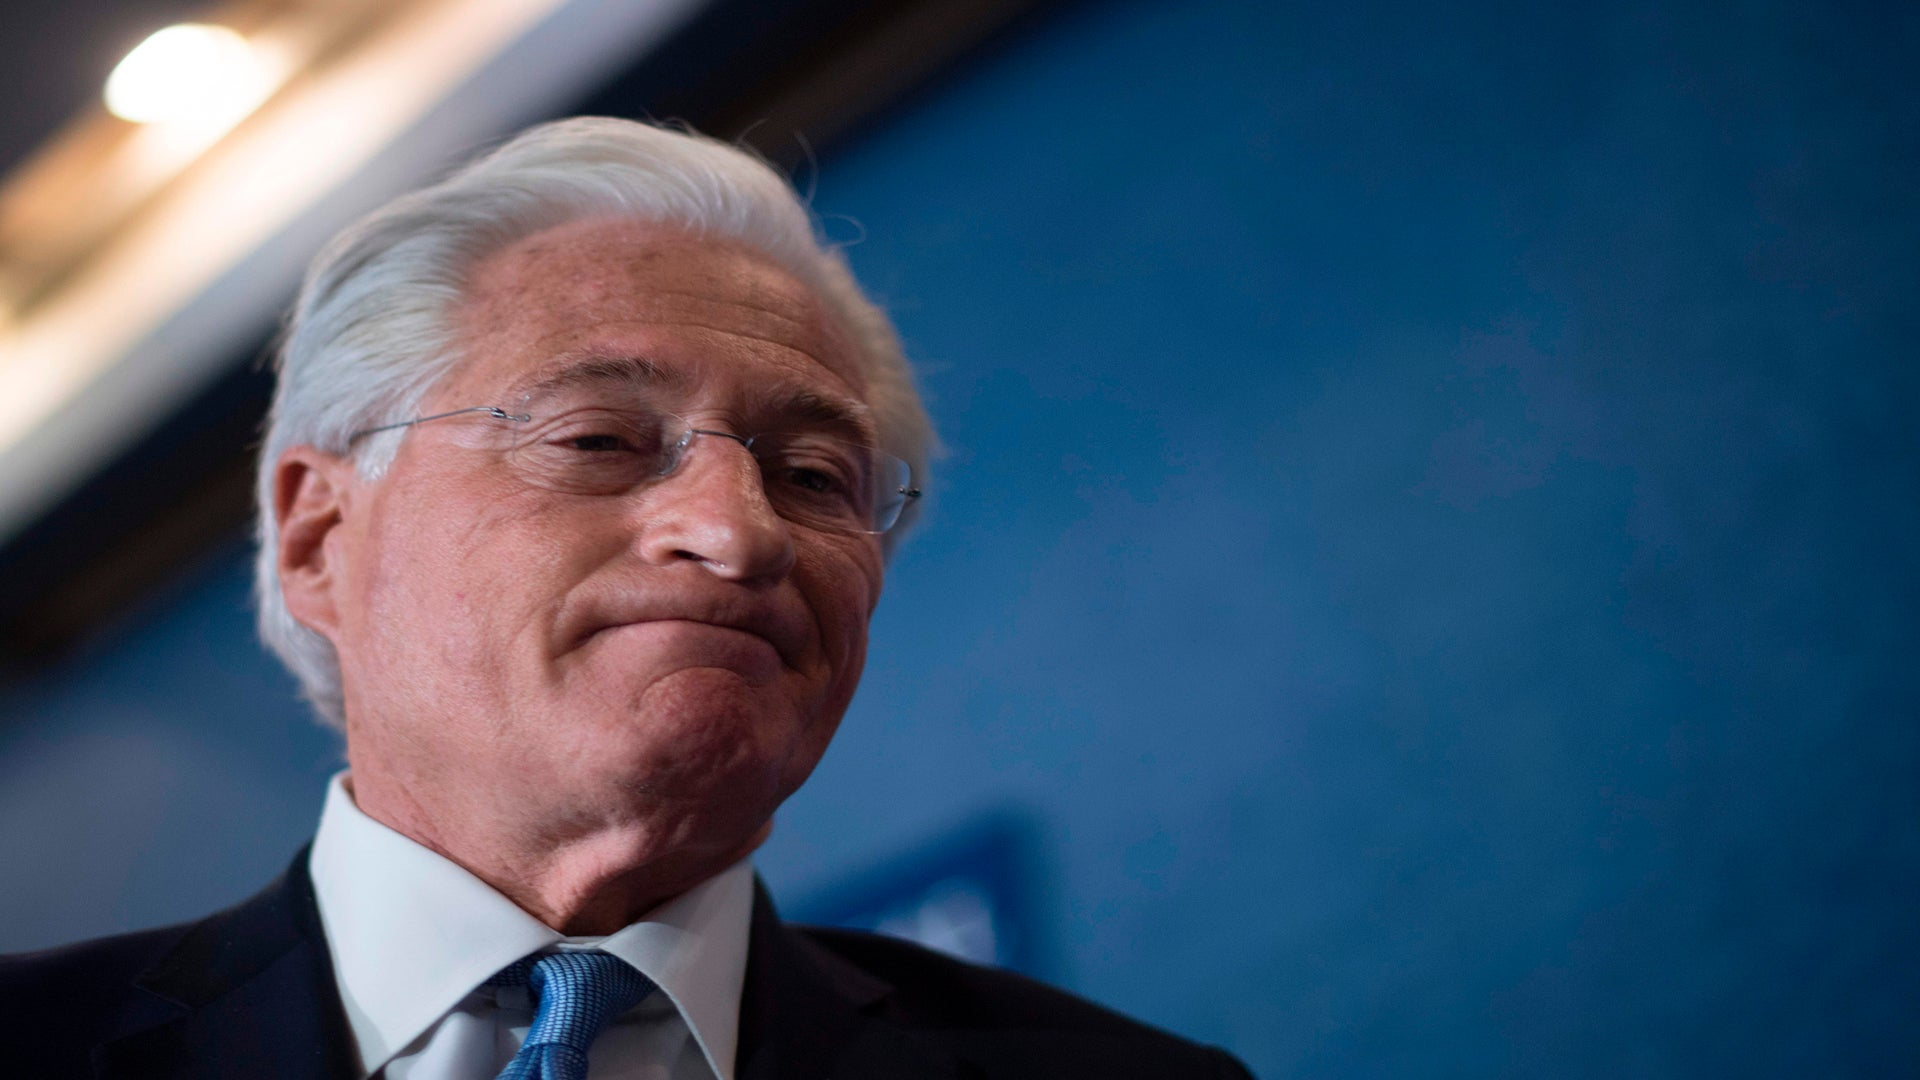 Marc Kasowitz Threatening Email Surfaces